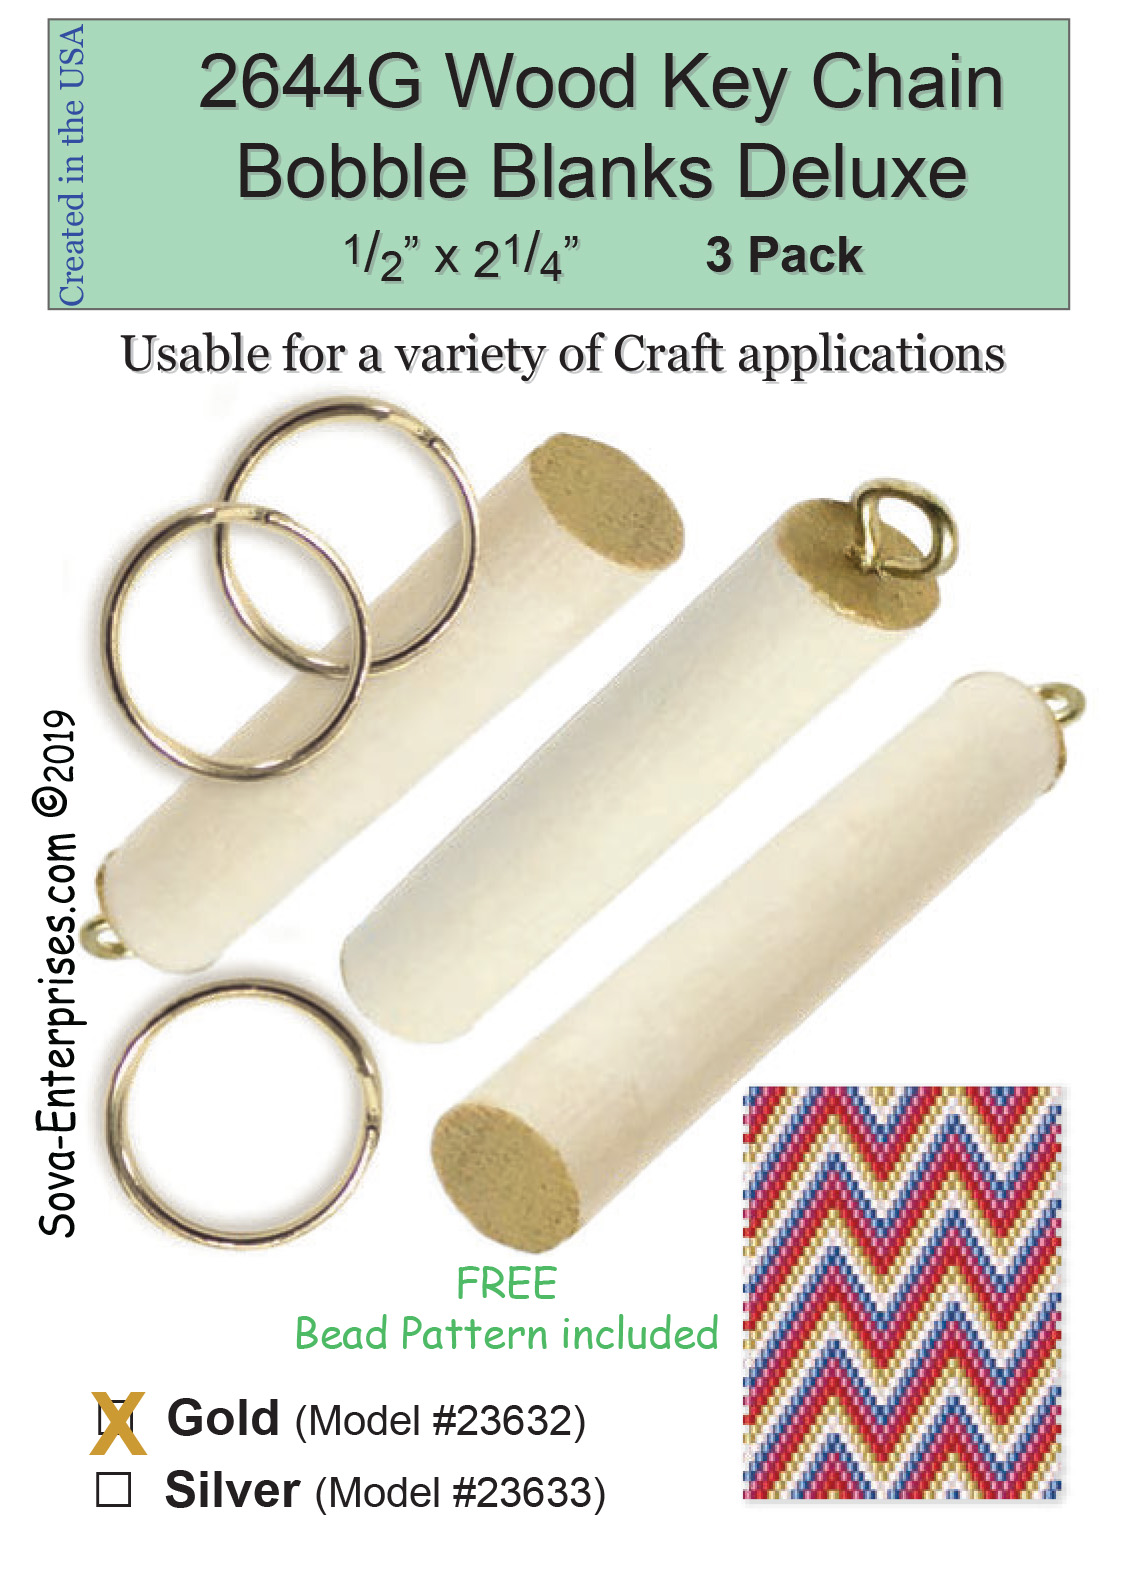 "Wood Key Chain Bobble Blanks Gold 1/2"" Deluxe 3 Pack 2644GD"